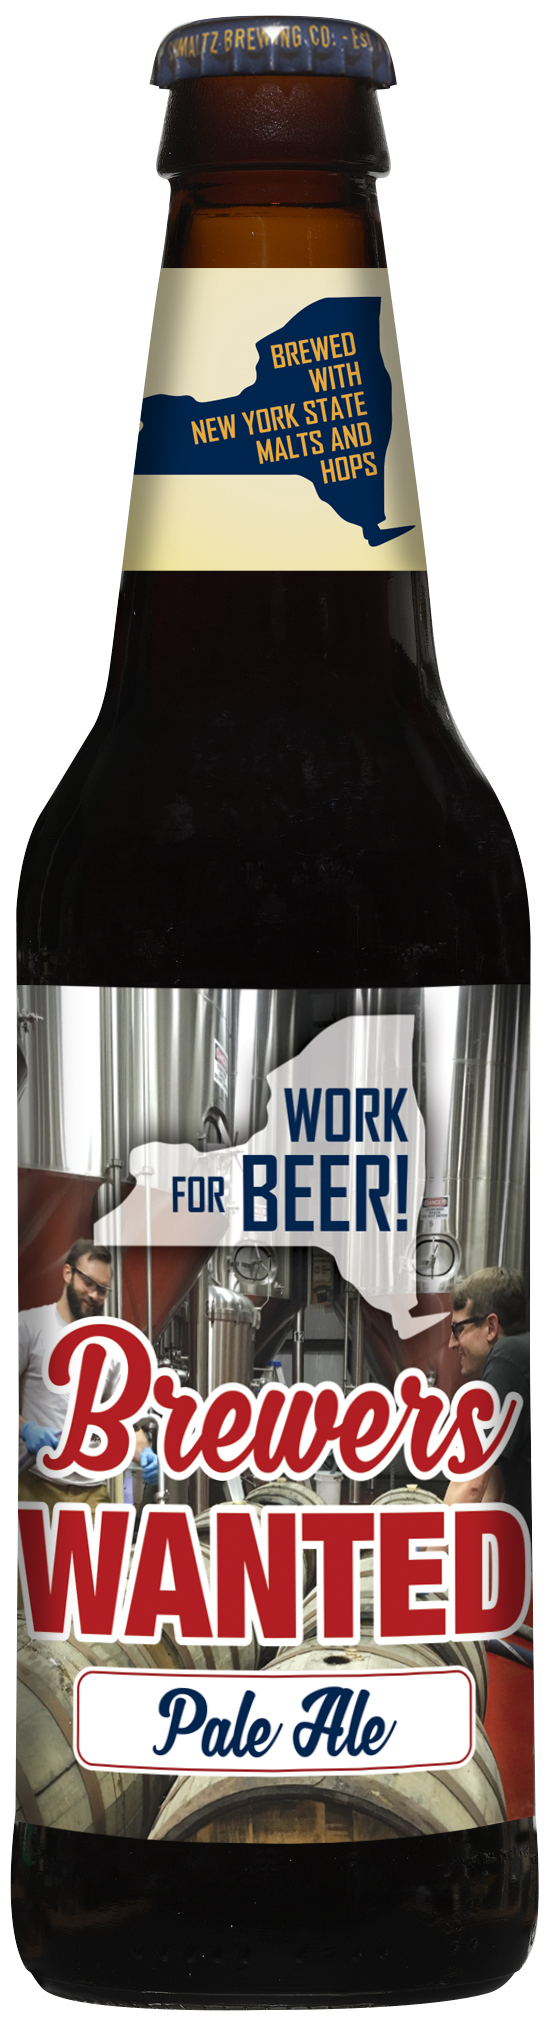 BREWERSWANTED 12oz BOTTLE 2